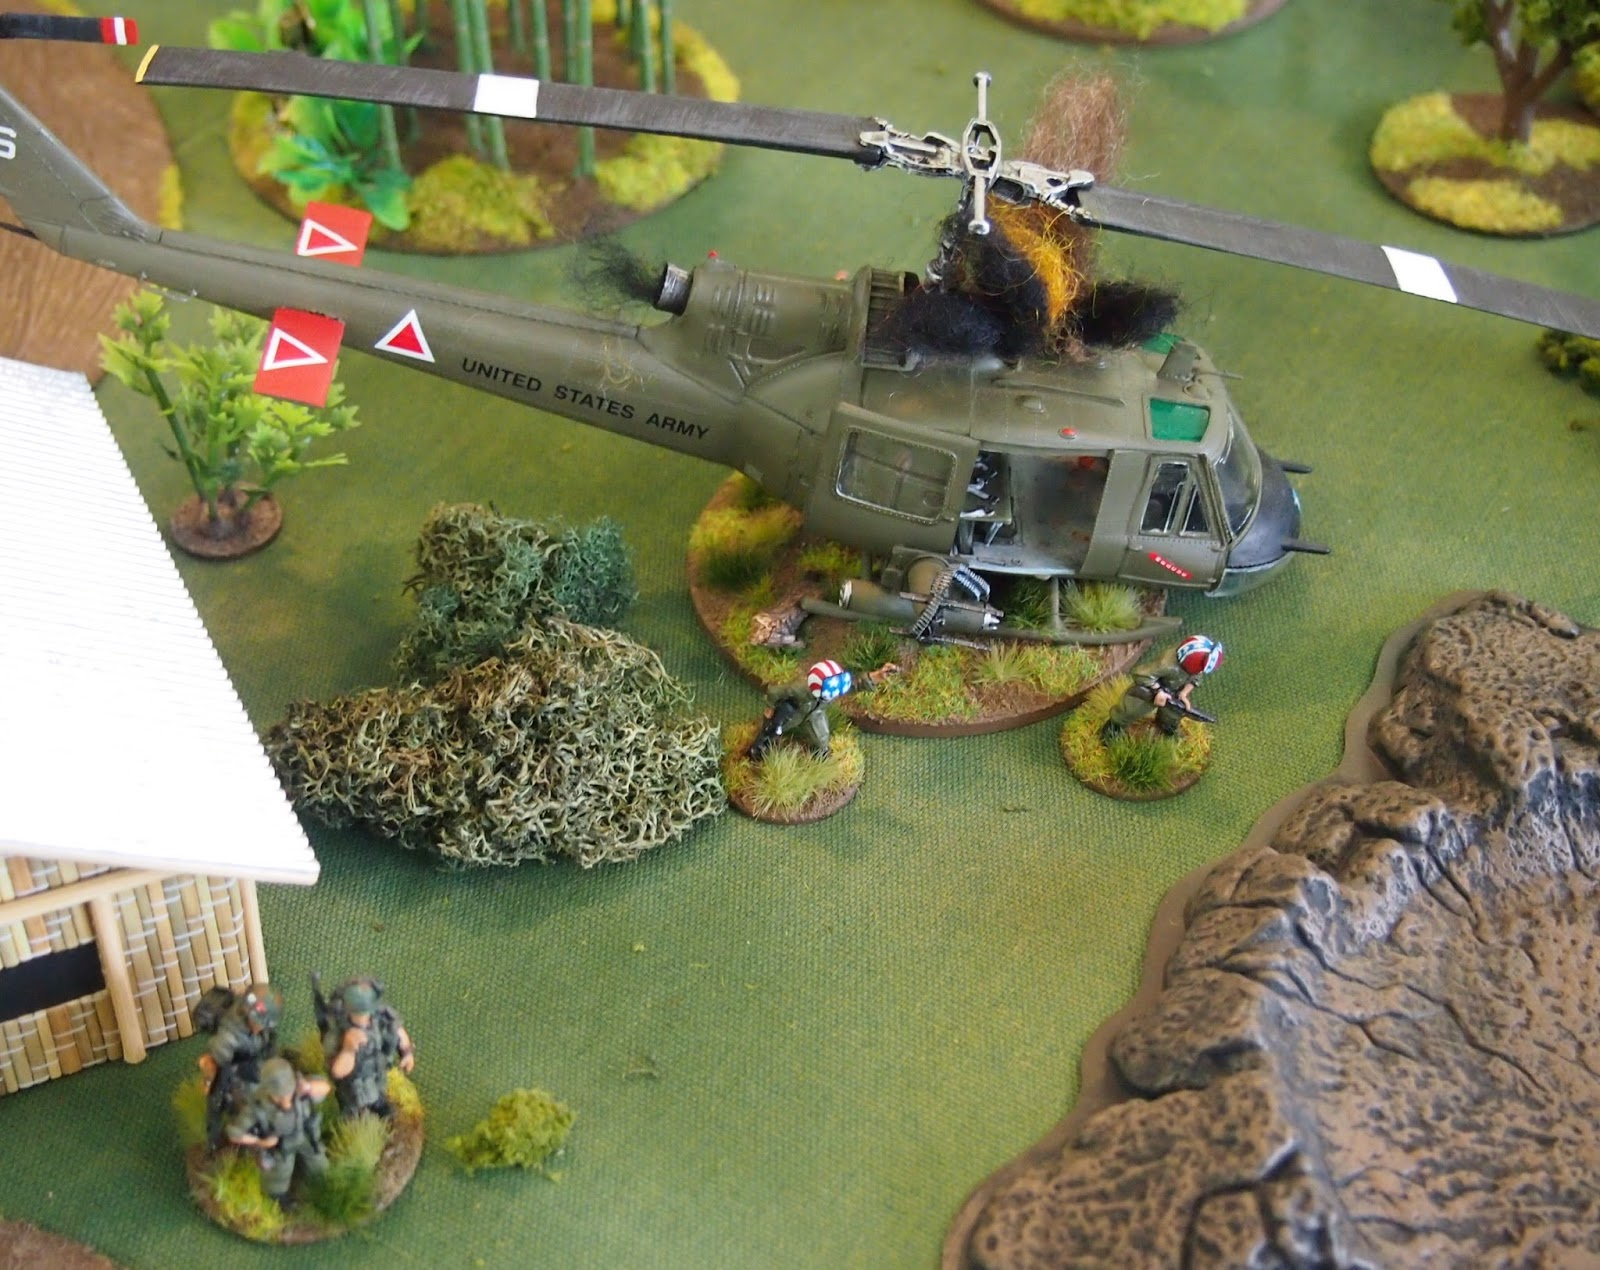 Did I mention that I shot down a Helicopter (finally)?